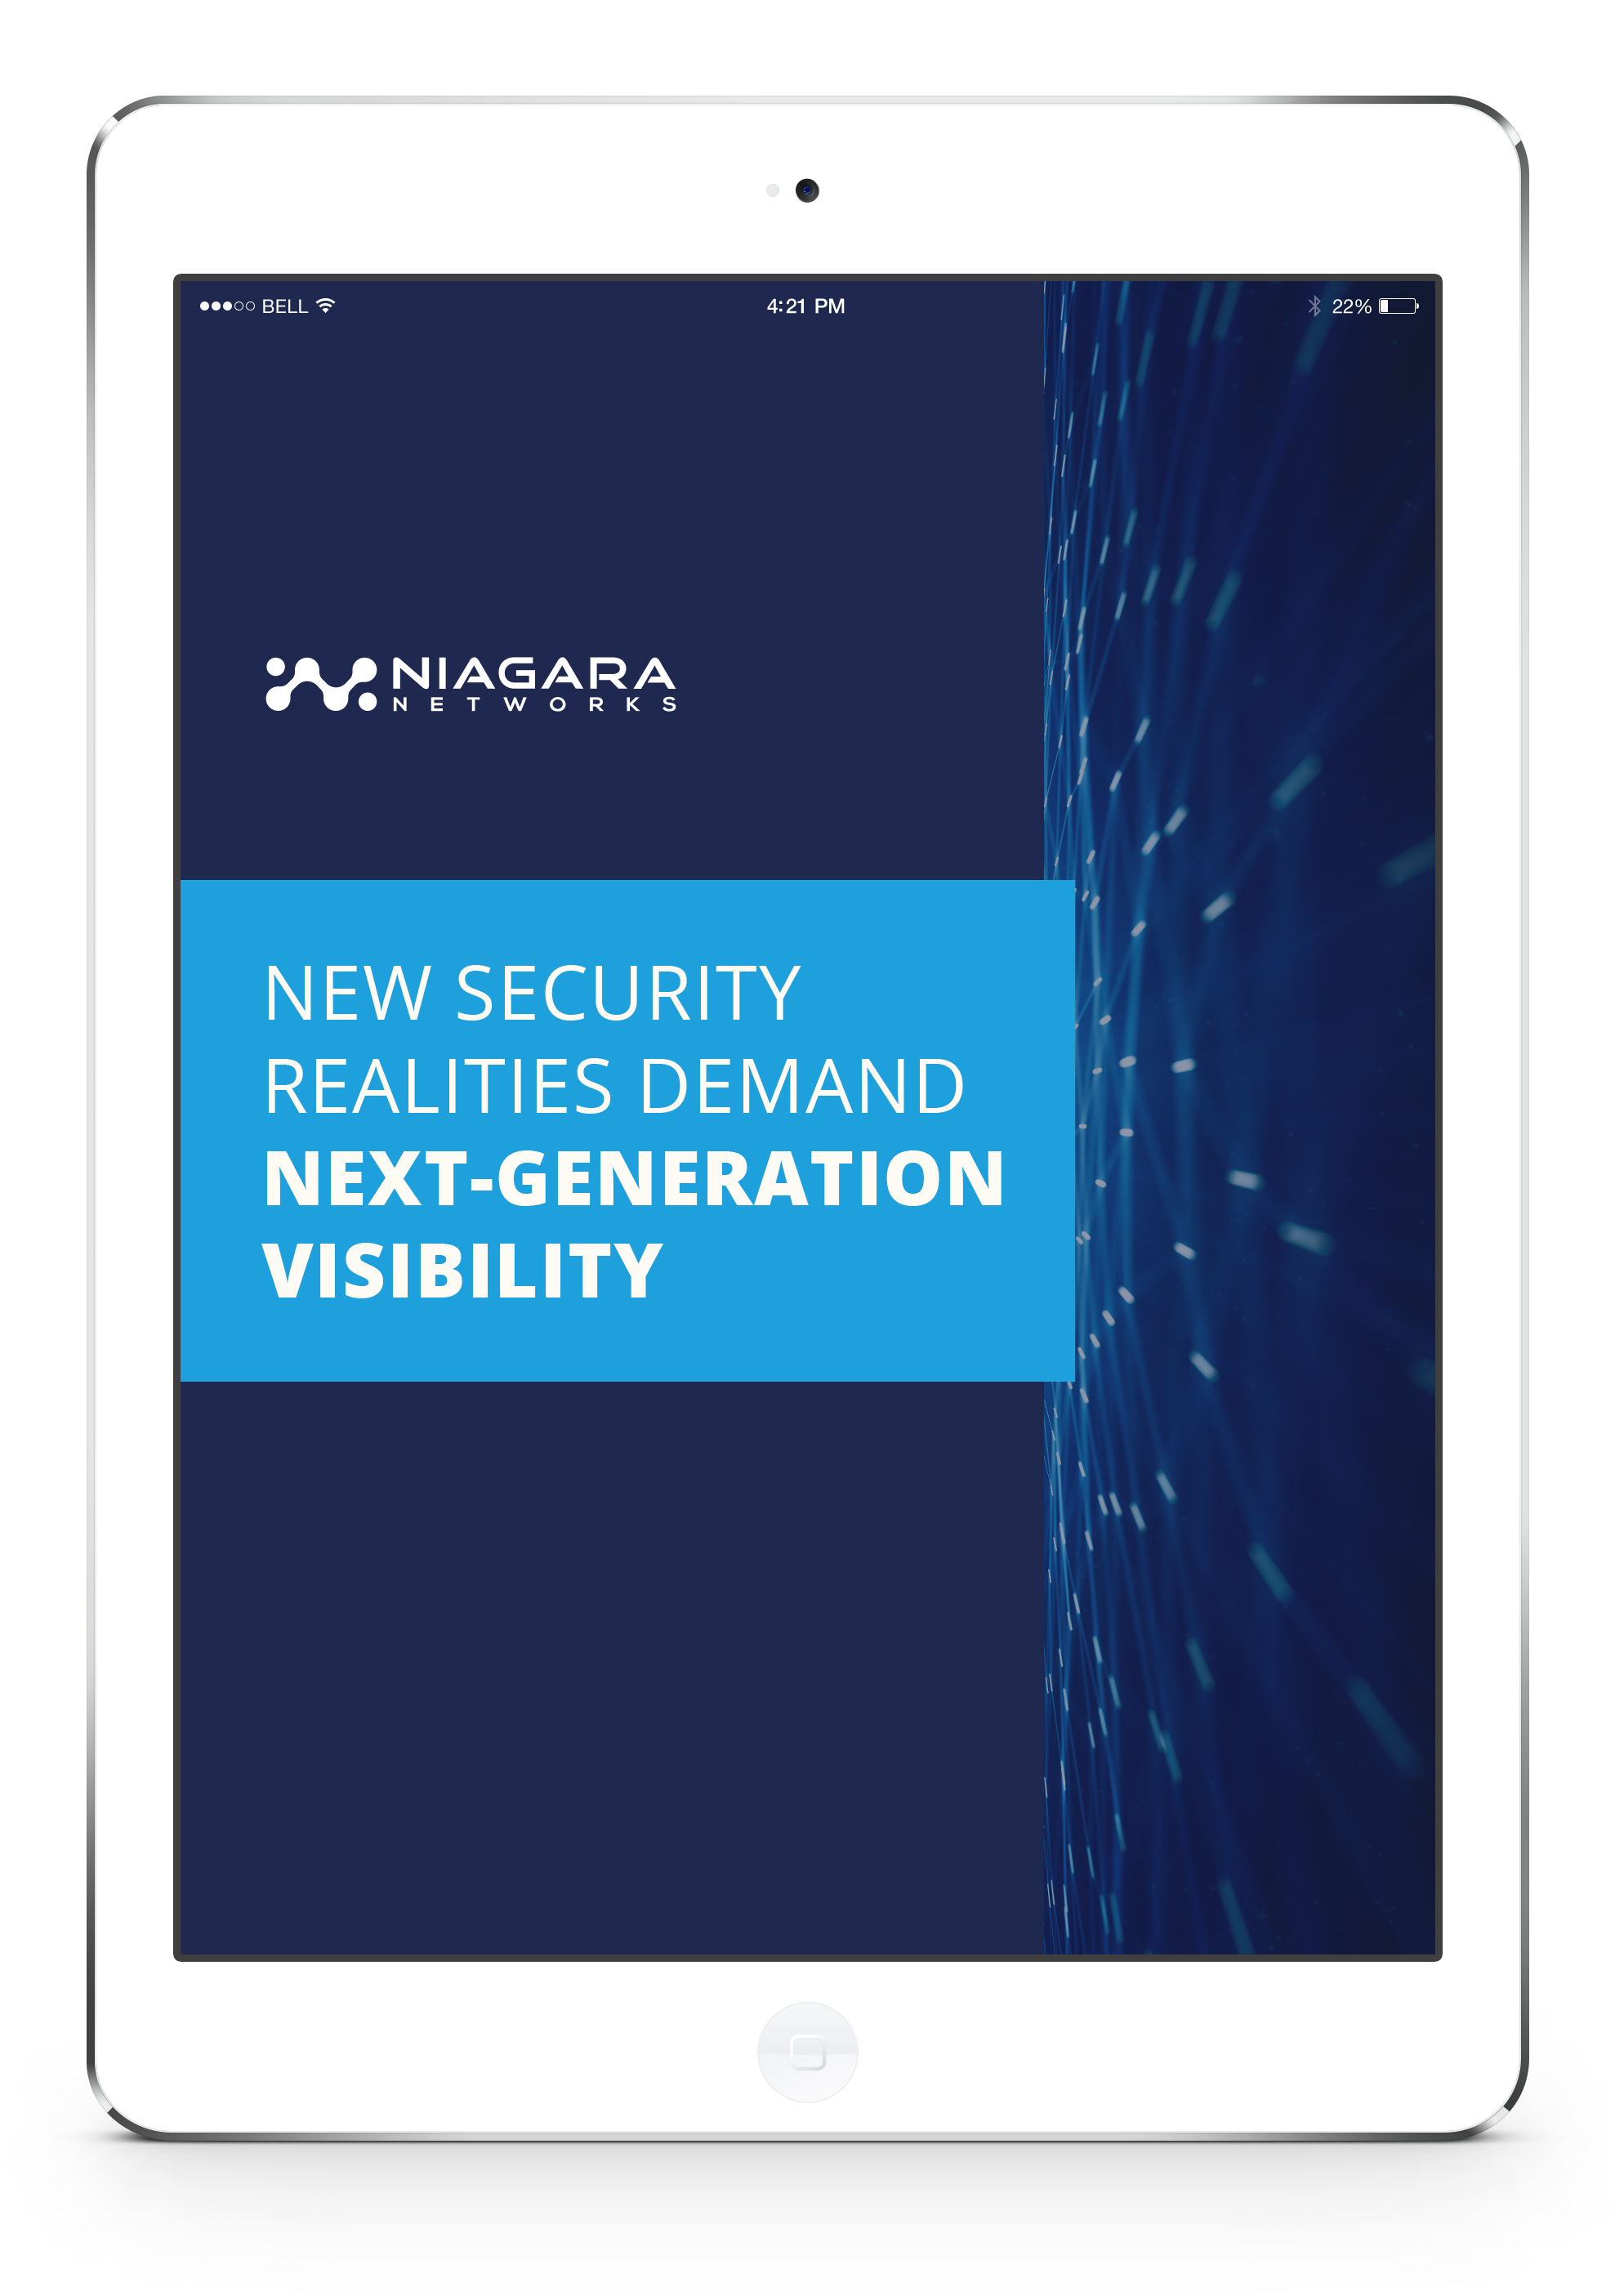 LP image_New Security Realities Demand NEXT-GENERATION VISIBILITY